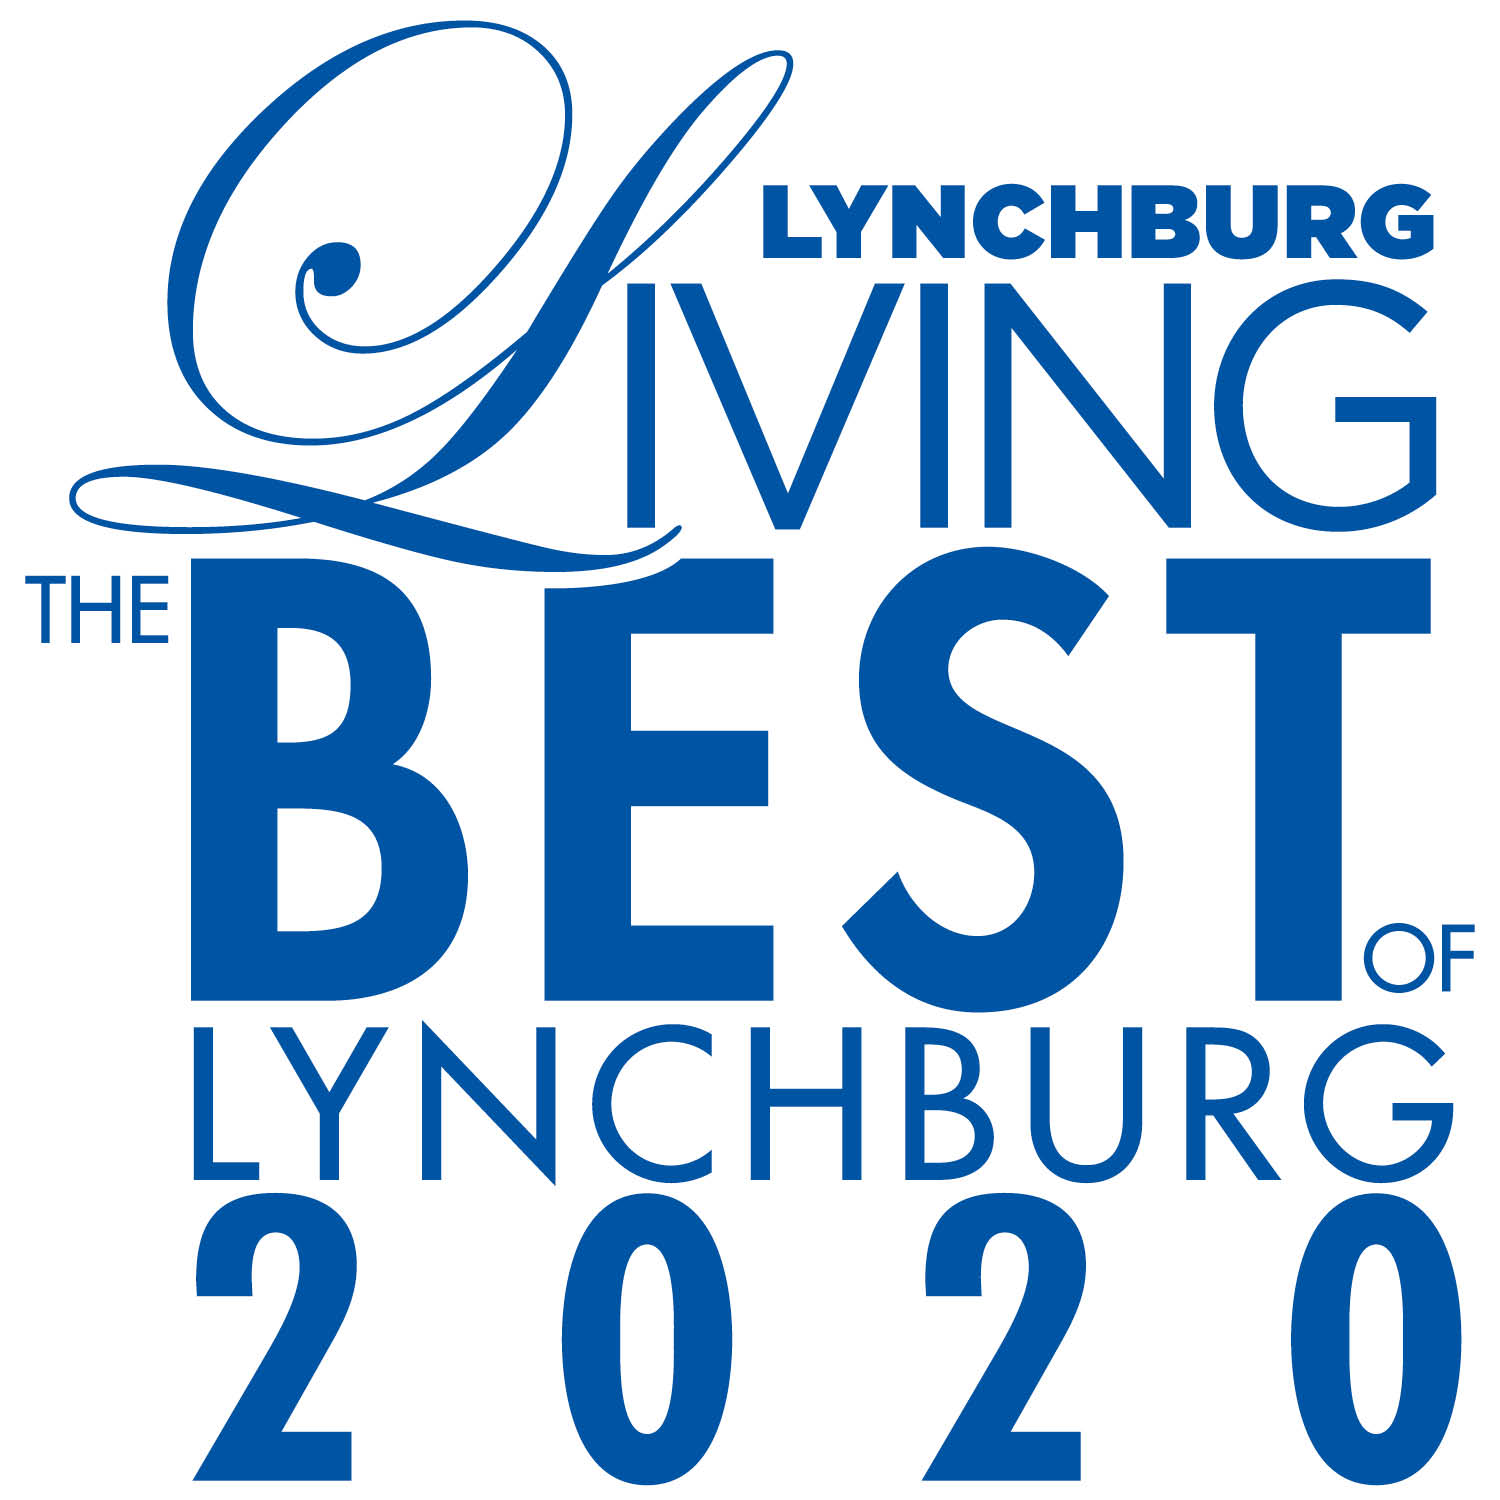 Browns Heating & Air won the 2020 Living the Best of Lynchburg 2020 award